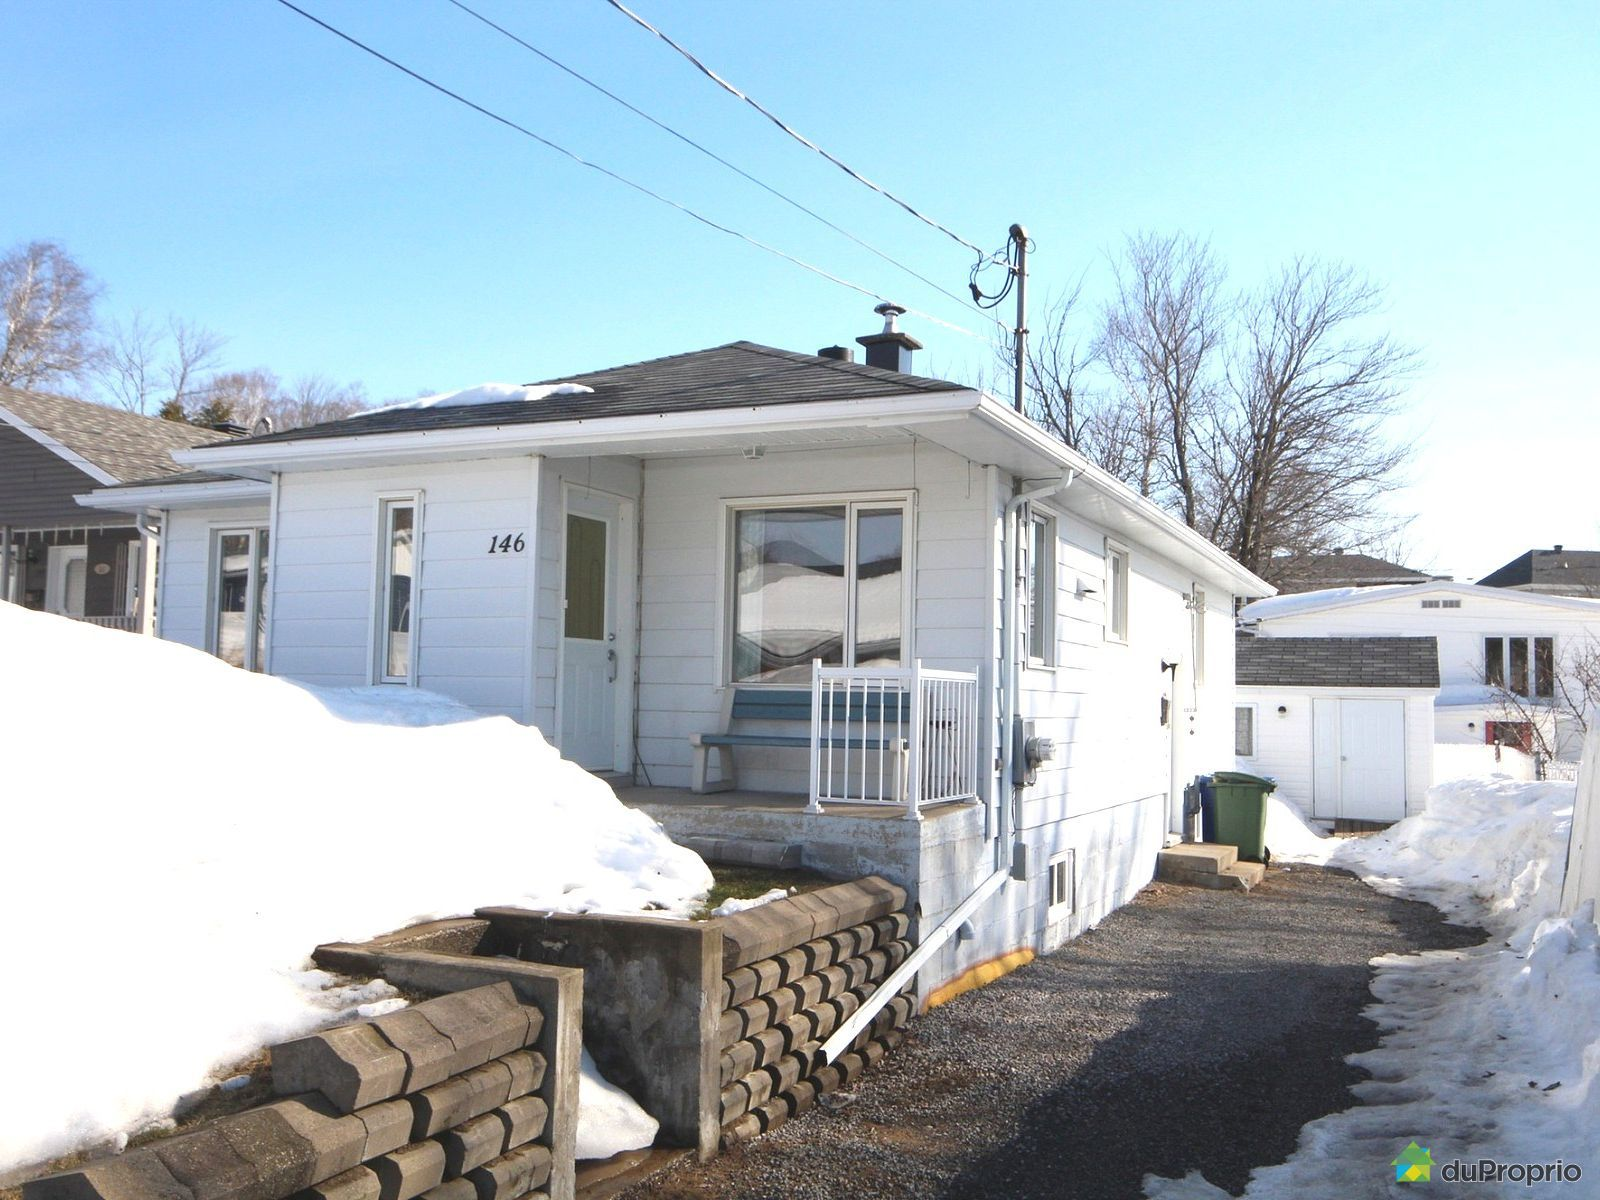 146 Rue Alfred, Beauport For Sale Duproprio